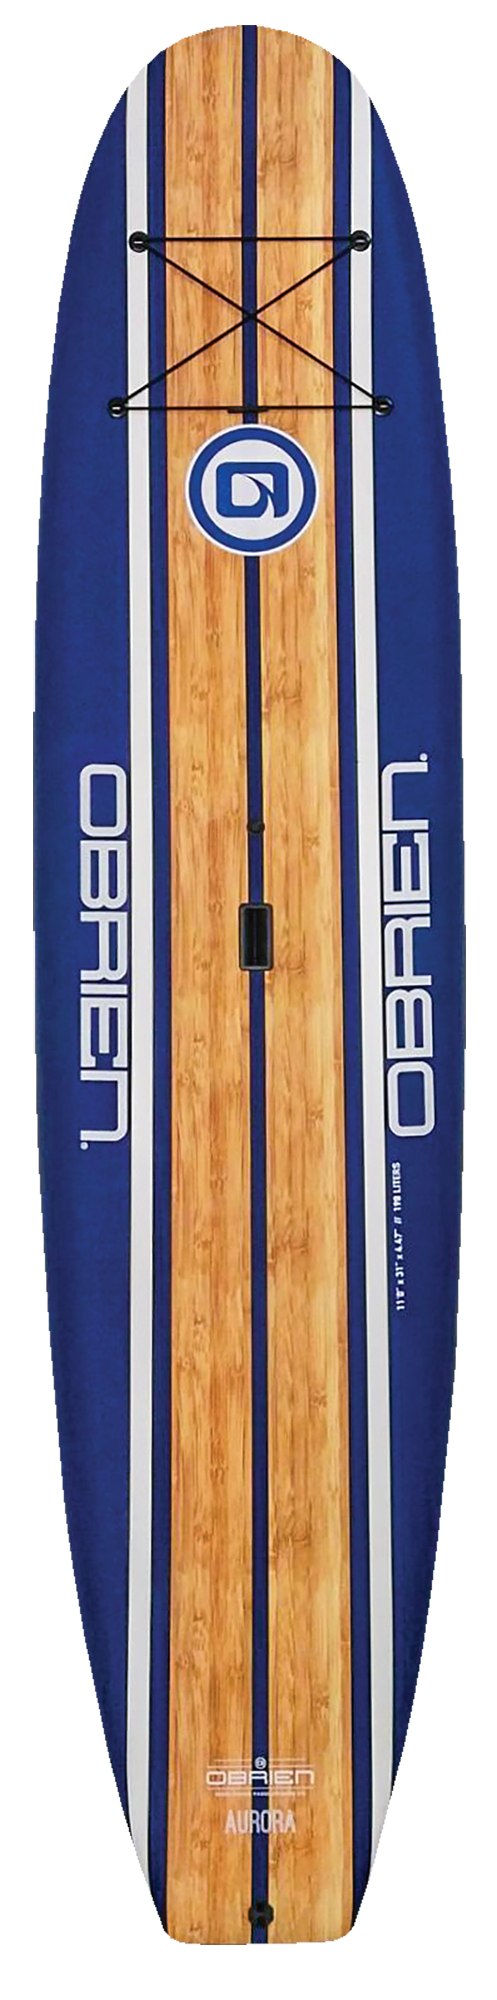 Obrien Aurora Stand Up Paddleboard 11'